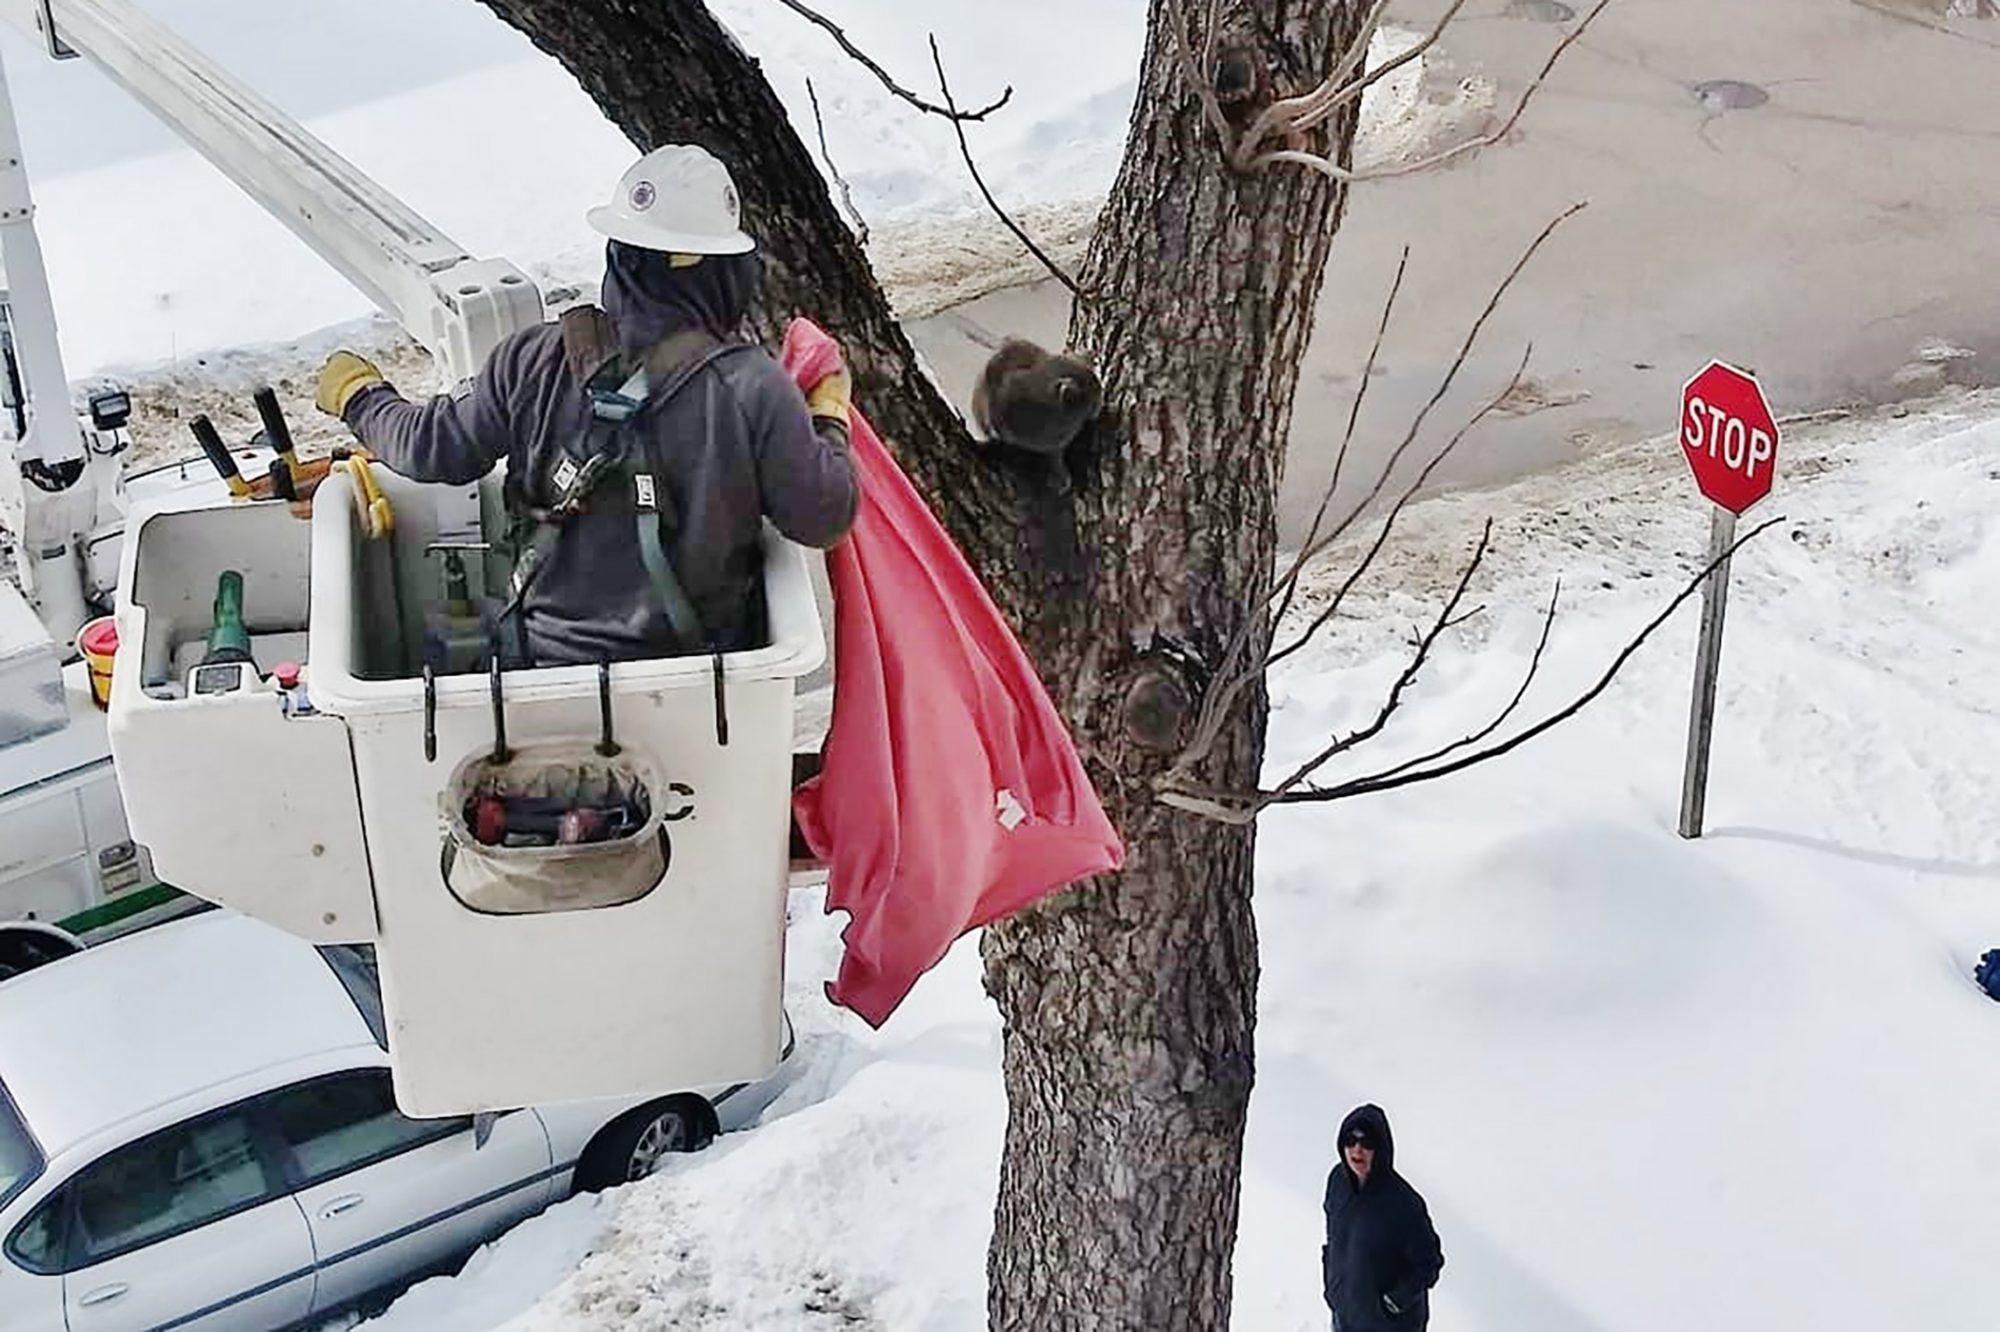 Picture of rescue worker saving cat from a tree during winter